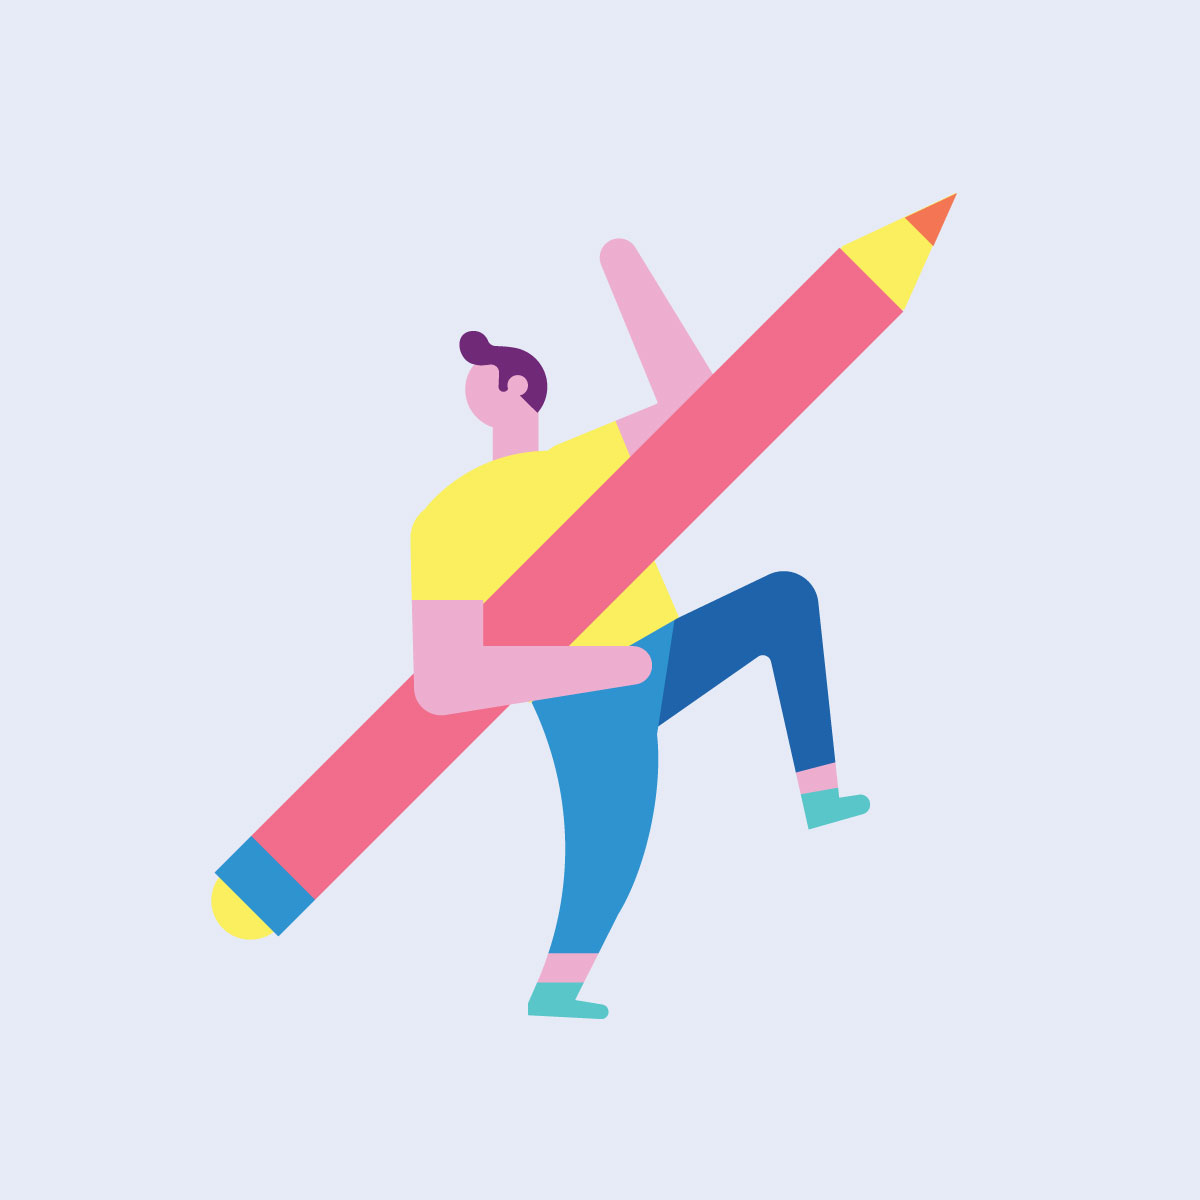 Illustration of man walking and holding a giant pencil while waving.